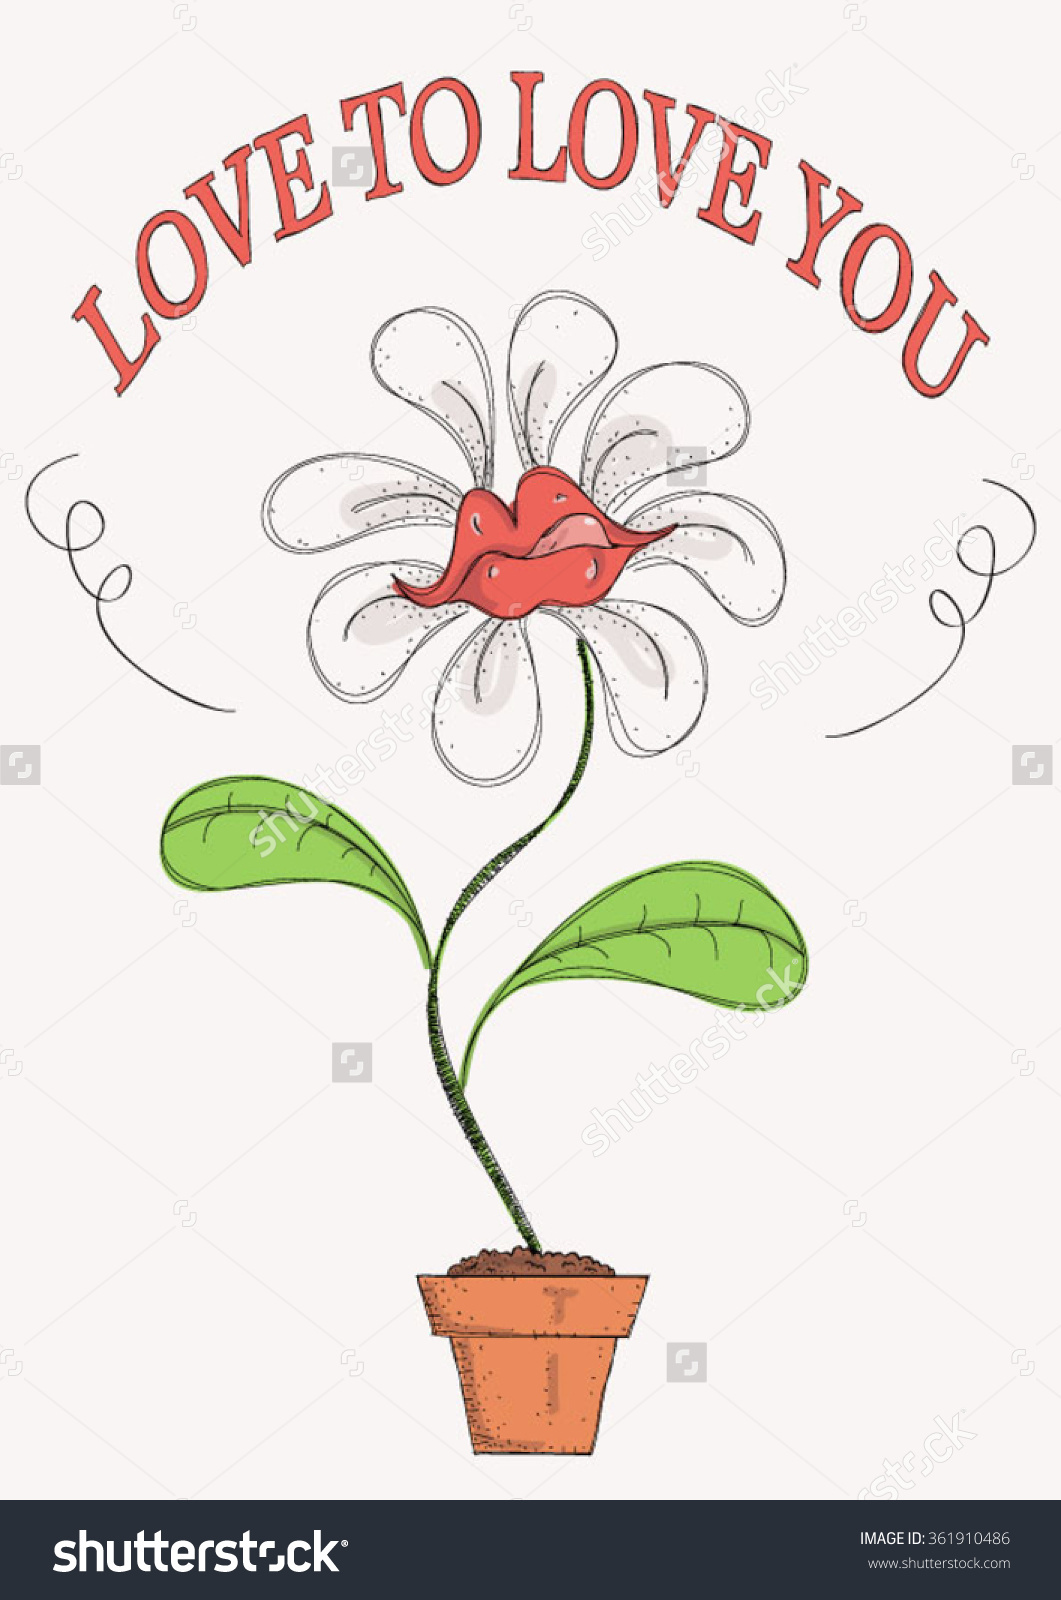 Funny, Colorful Illustration With Potted Flower Shaped As Lips.